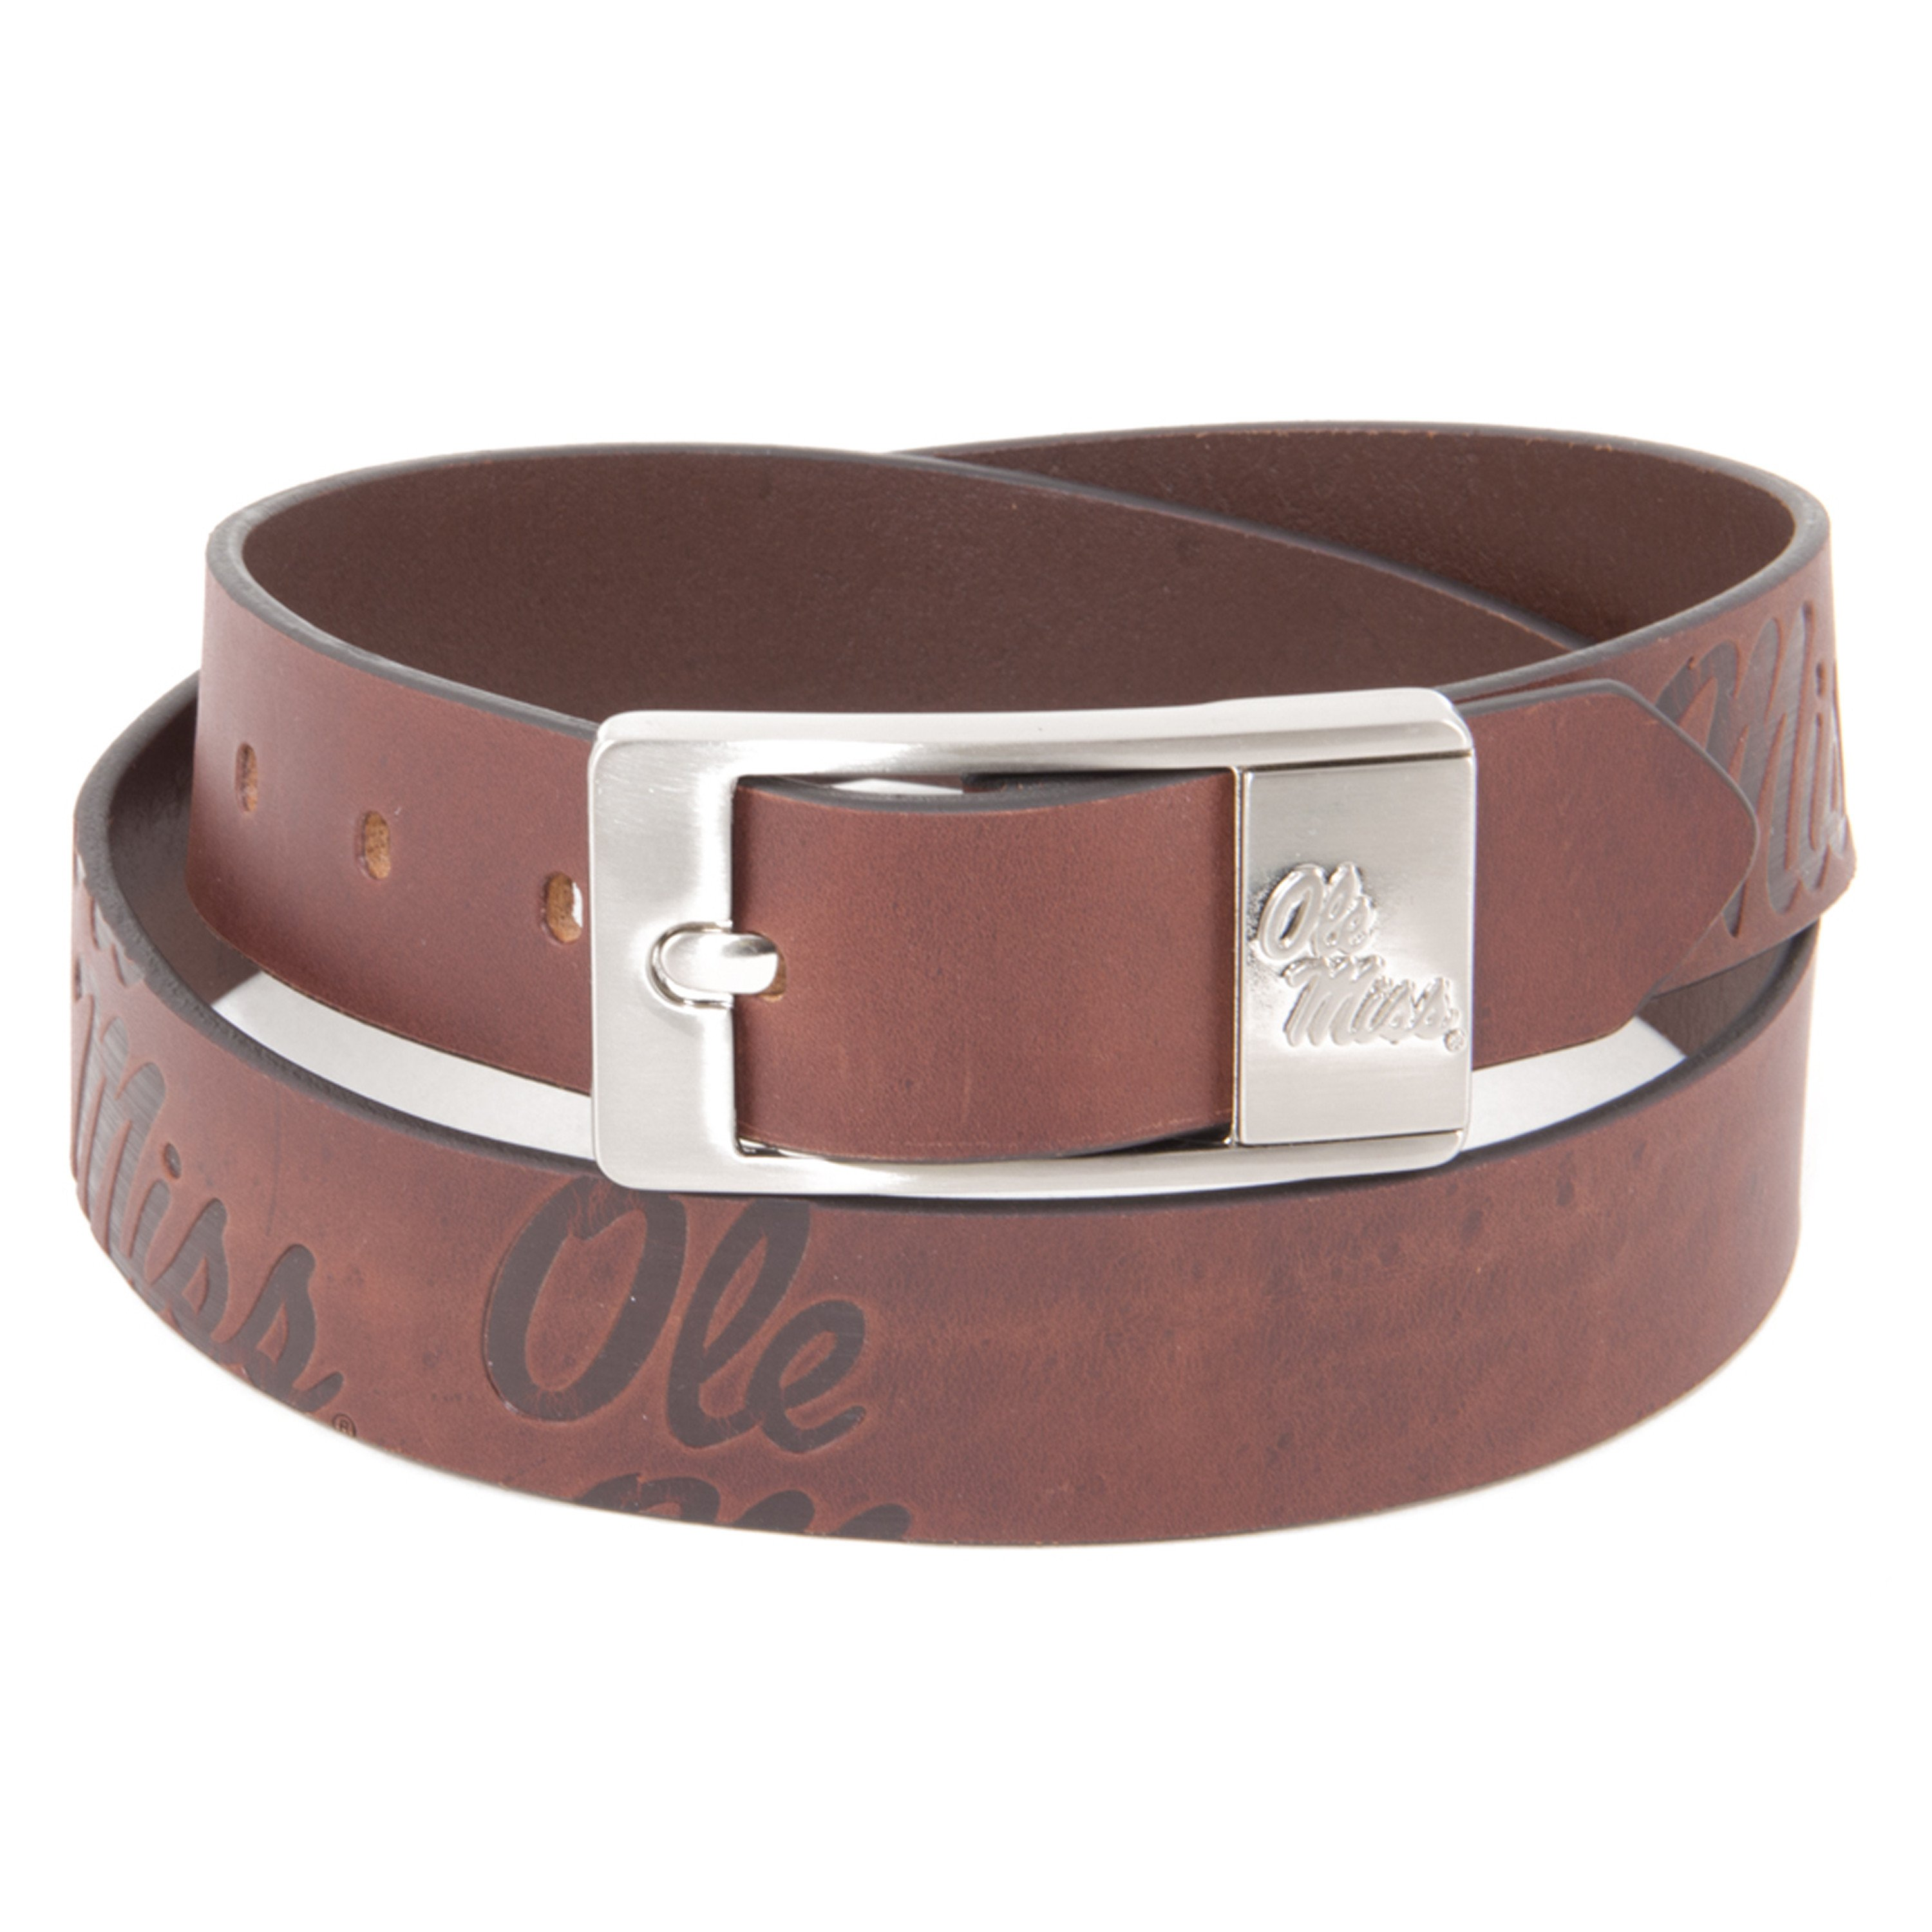 Ole Miss Brandish Belt